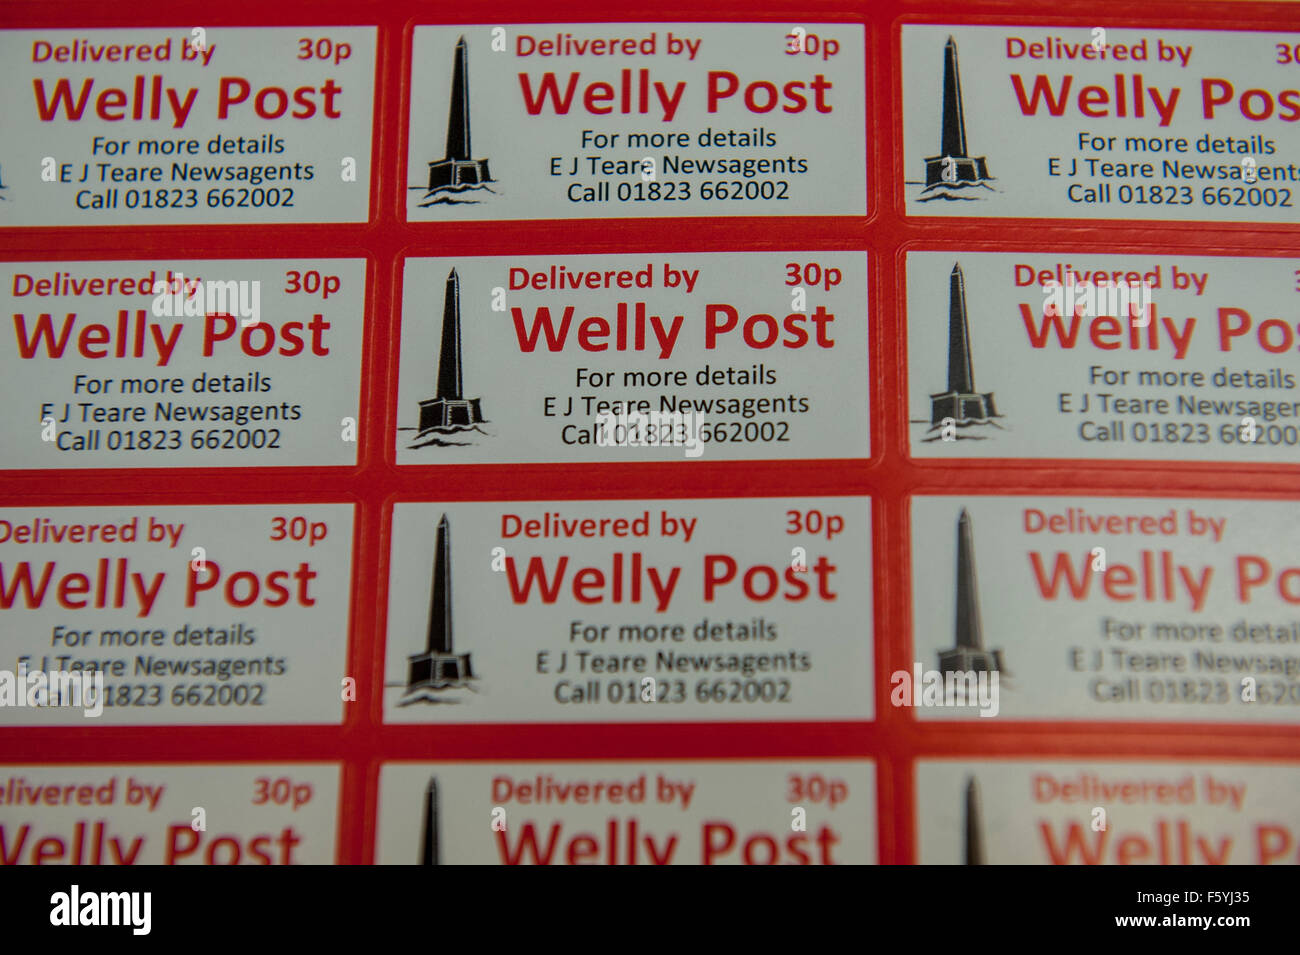 the stamps act as another means to advertise the service and spread the word .   The Welly Post , Wellington , Somerset - Stock Image